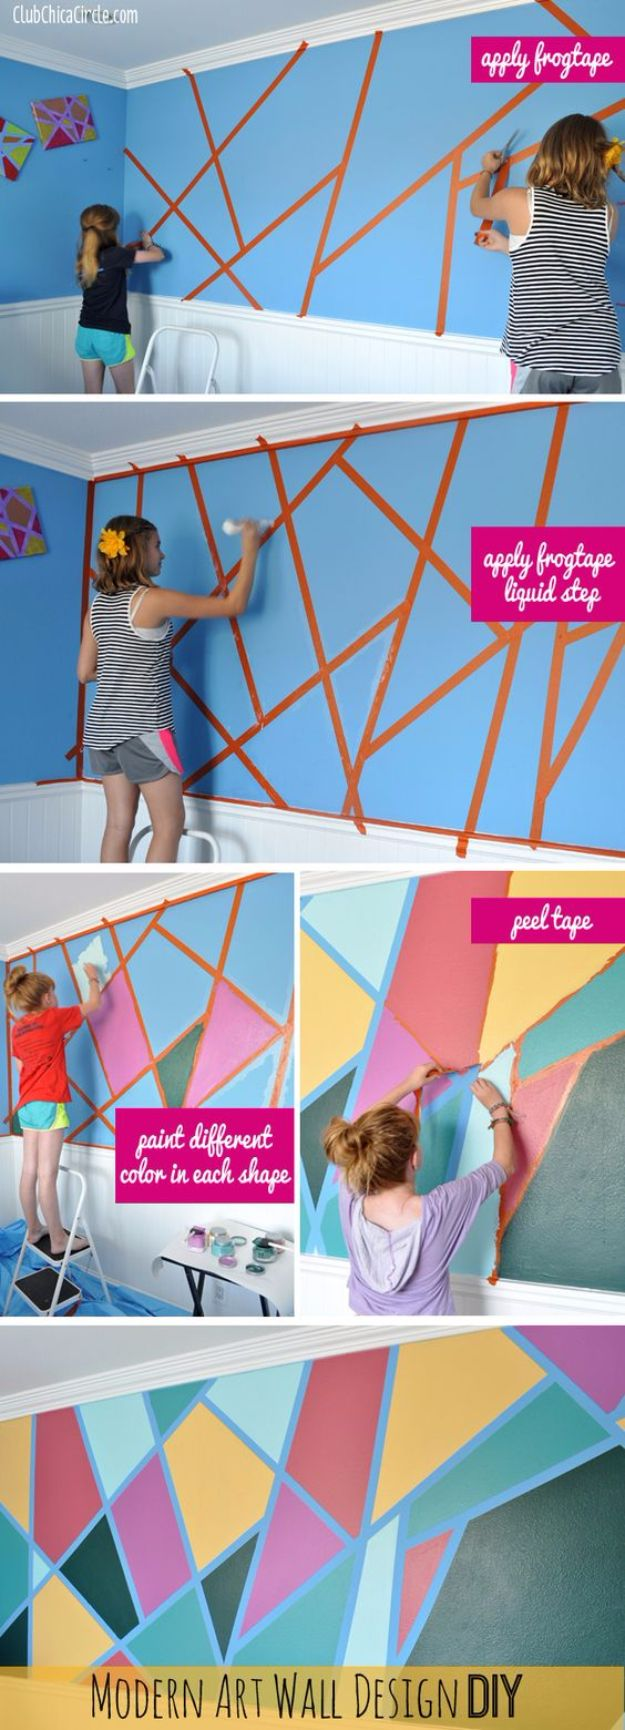 34 cool ways to paint walls room ideas room decor - Cool ways to decorate your room ...